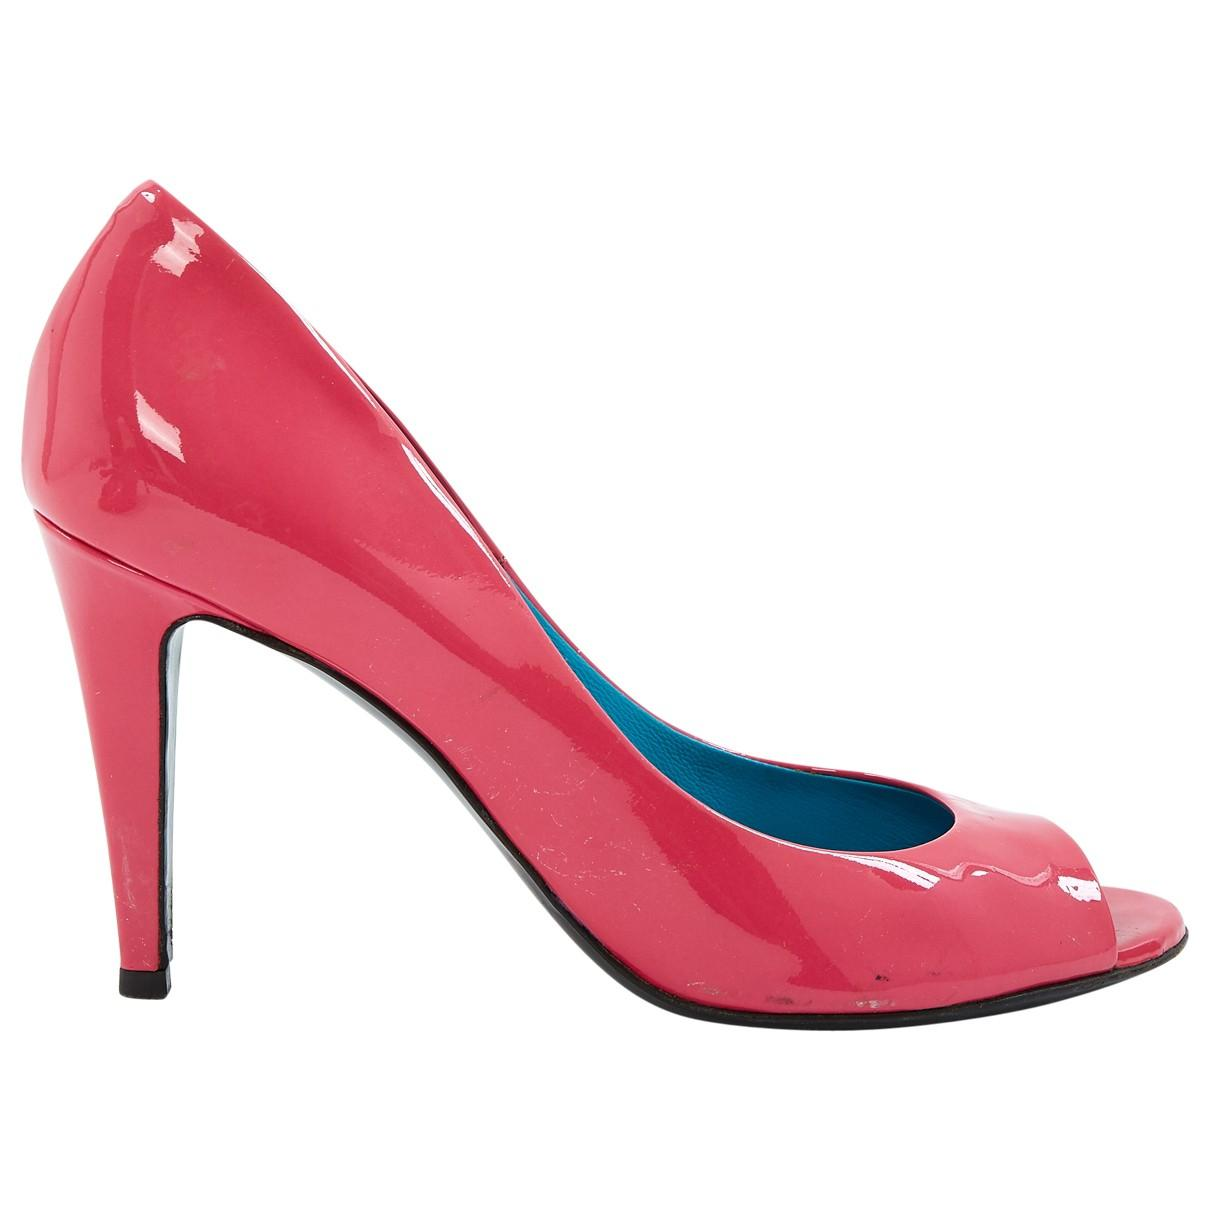 a15a188540f Bottega Veneta. Women s Pink Patent Leather Heels.  253 From Vestiaire  Collective